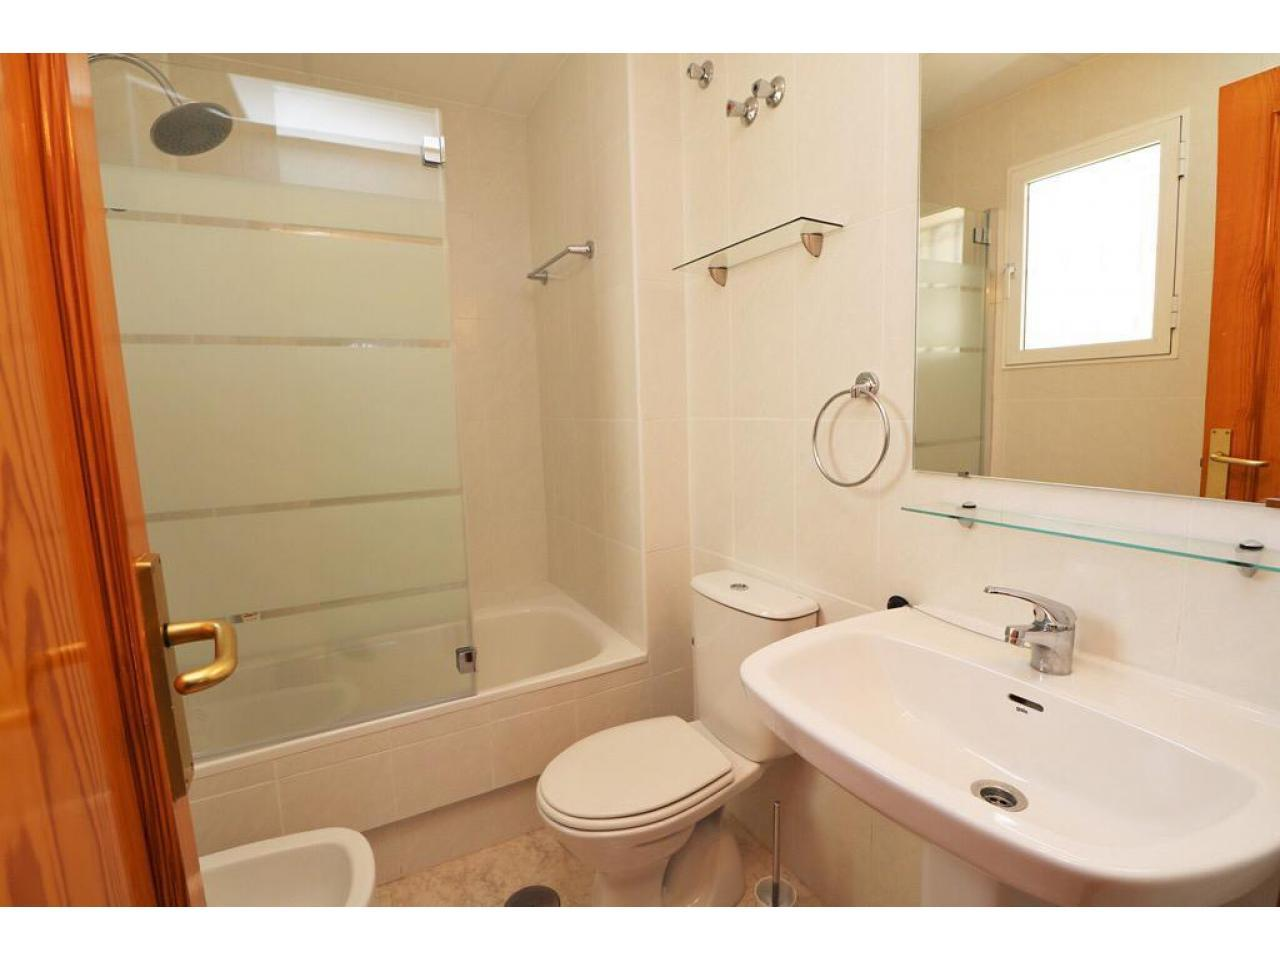 Apartment in Torrevieja, Spain for rent - 9